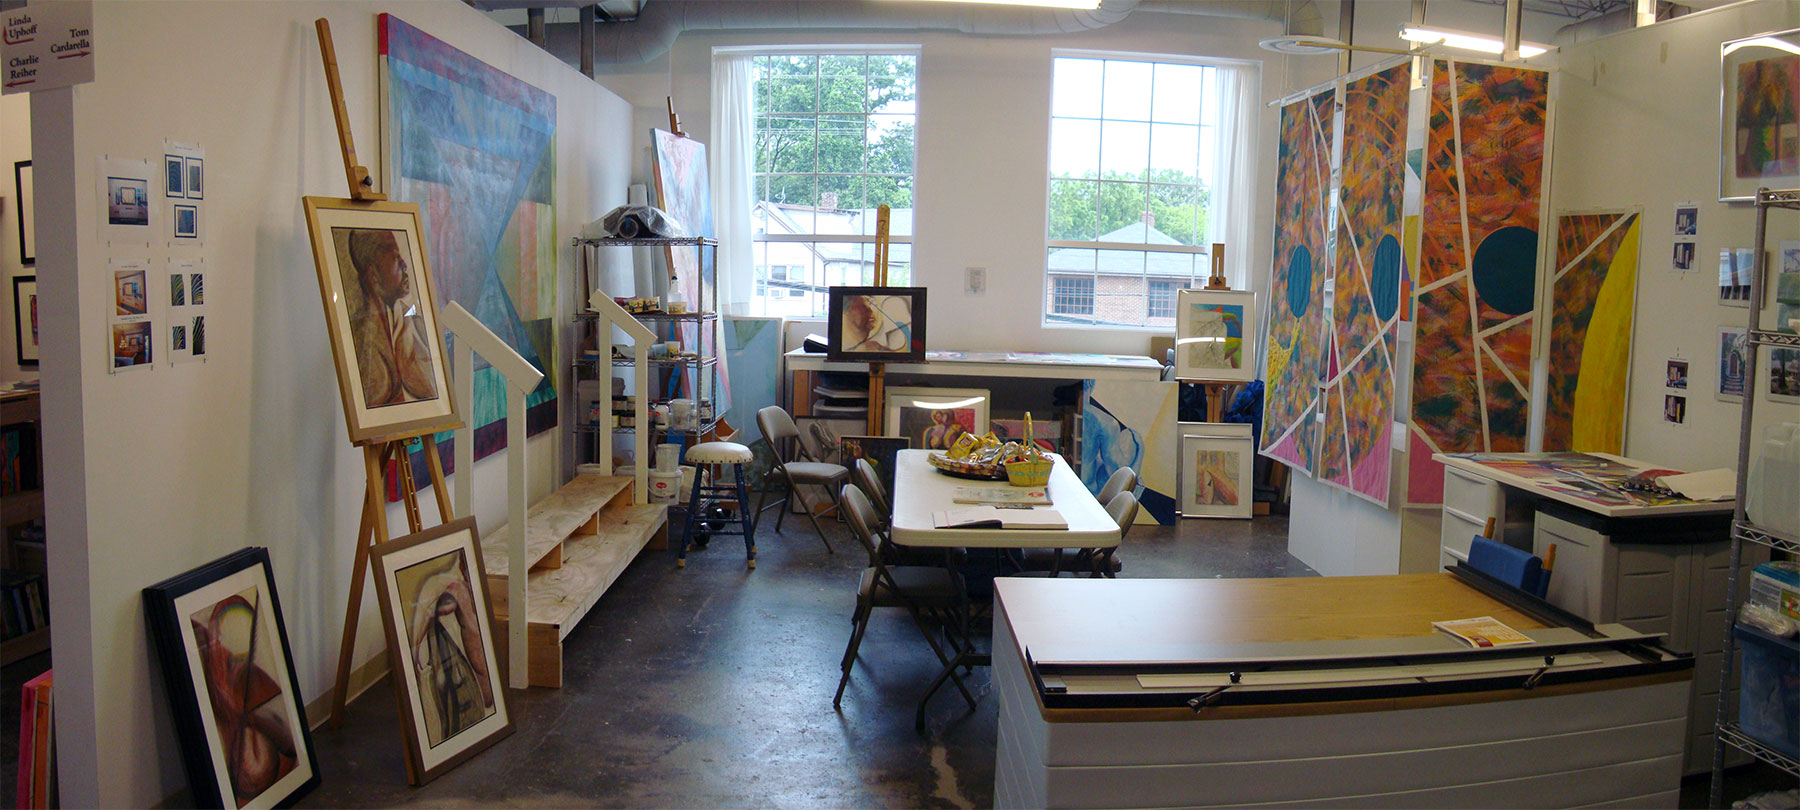 Pelican Arts Studio - Open Studio Tour, 2011